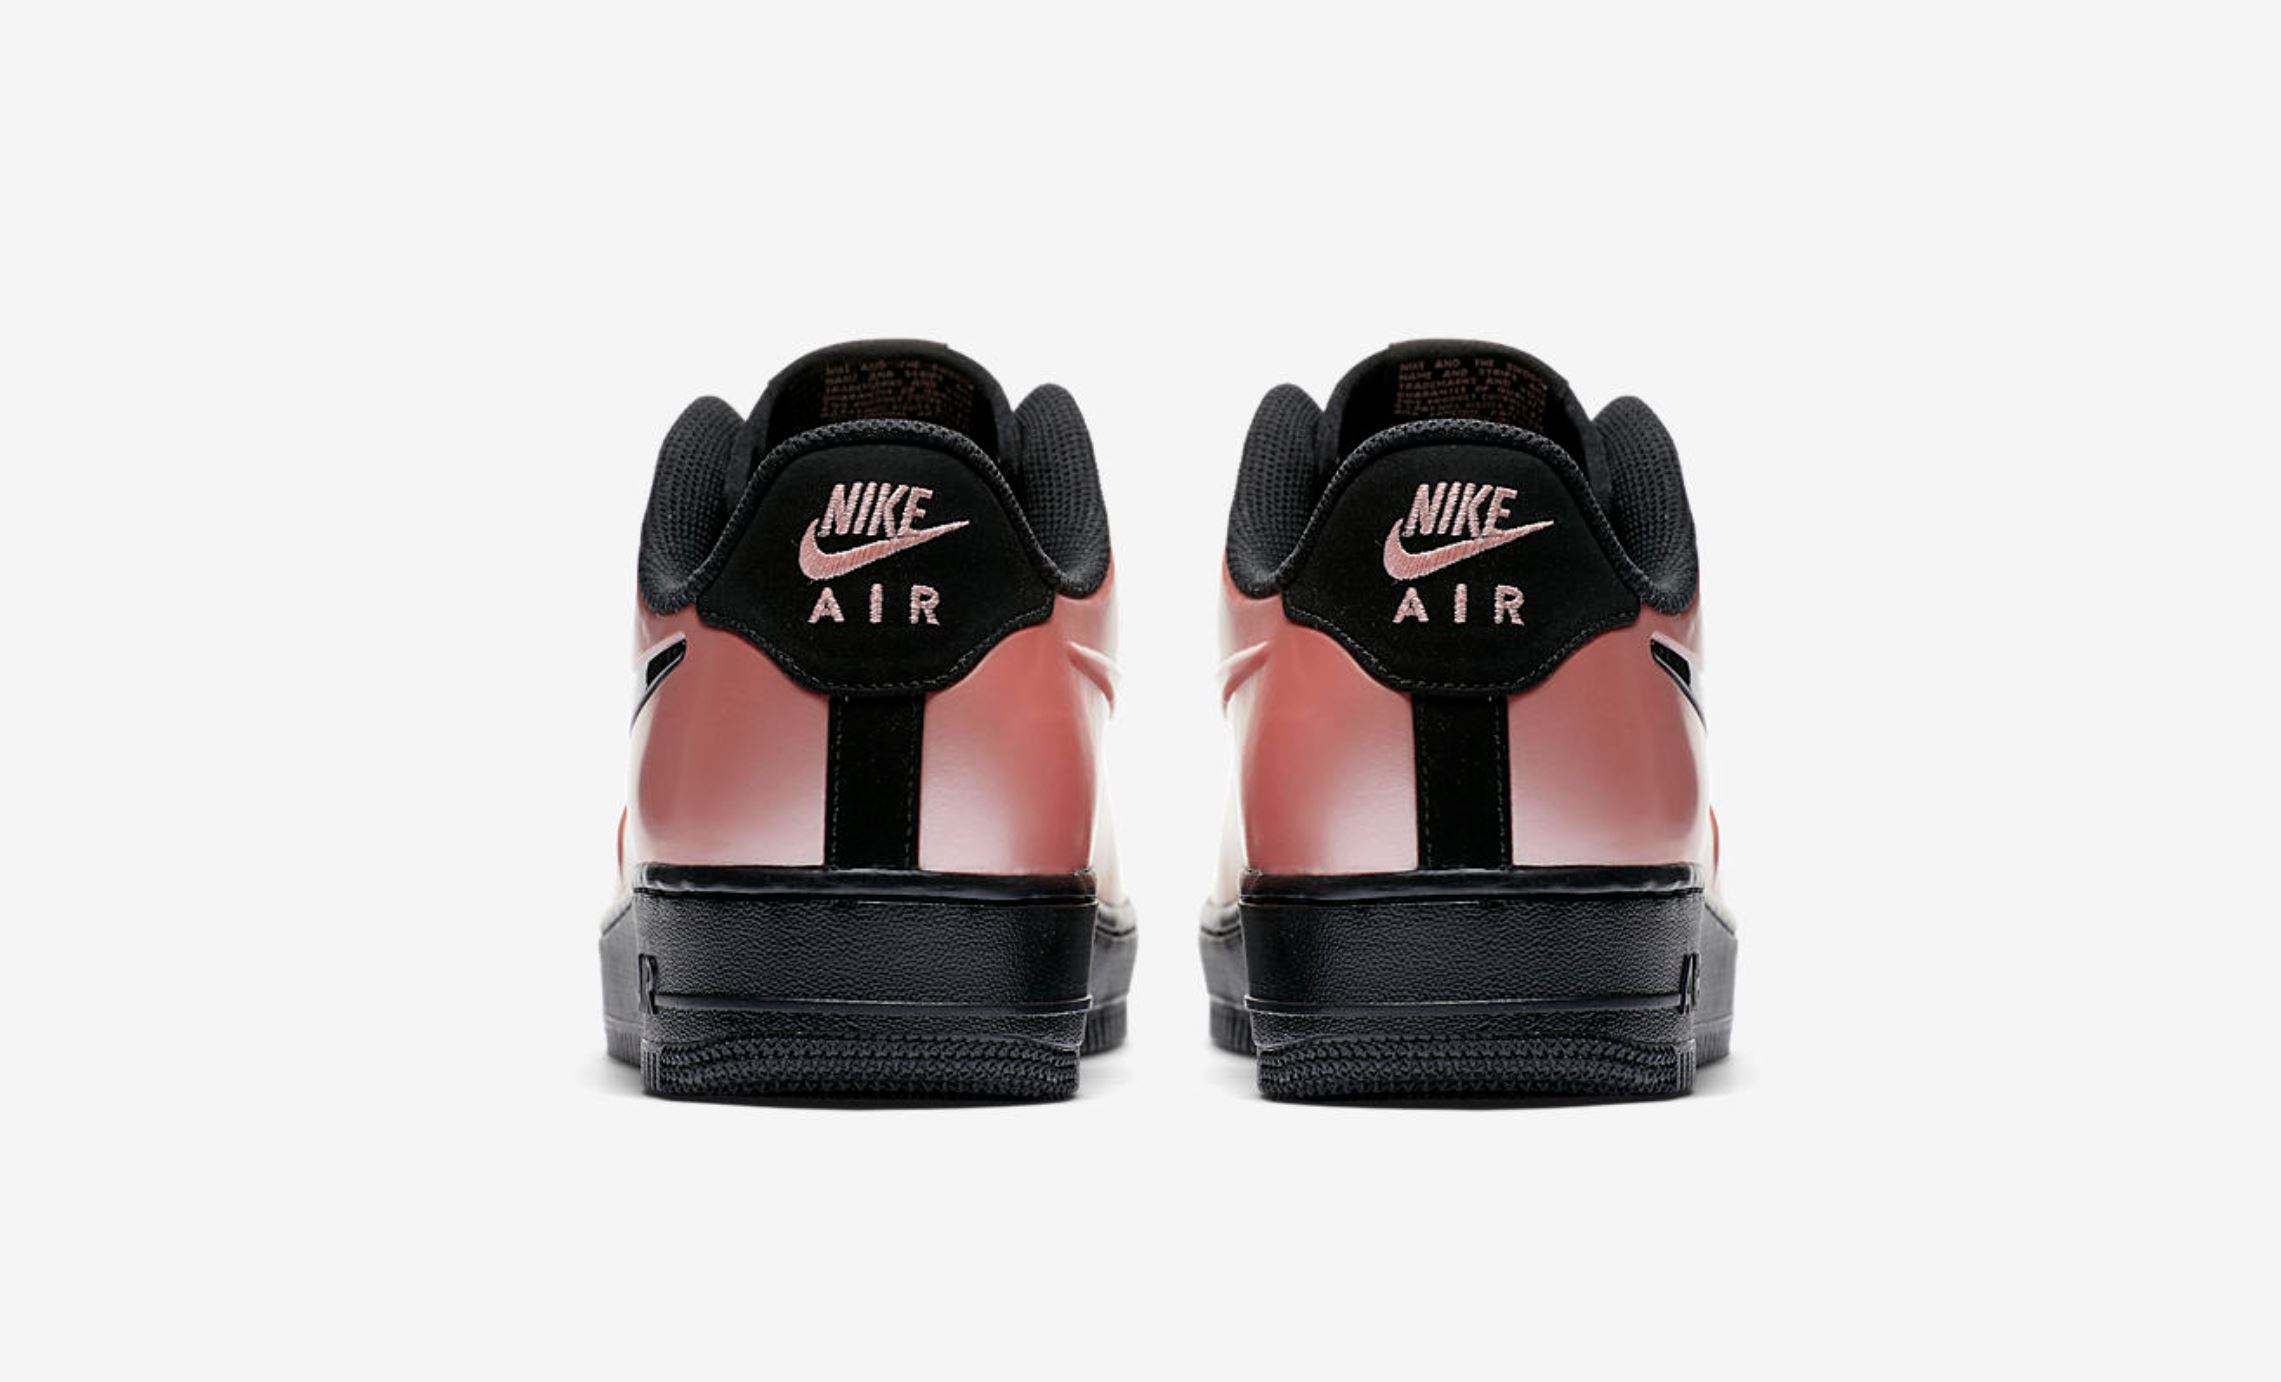 nike air force 1 foamposite pro cup coral stardust 4 - WearTesters 606b4125b